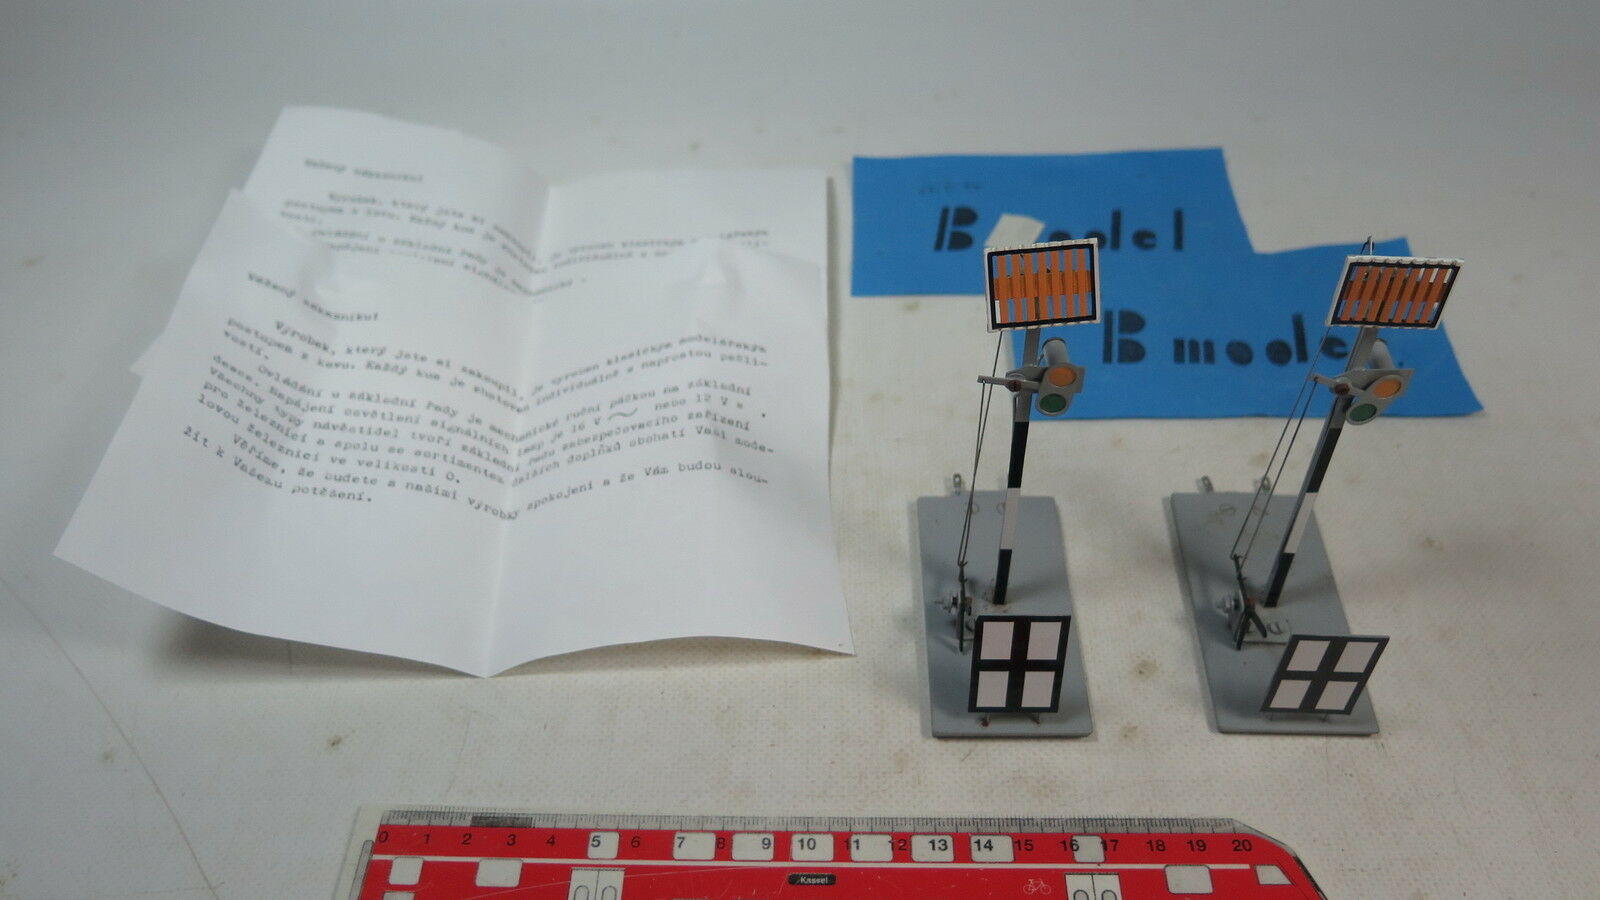 Ax899-0, 5 X B Model (ETS) O Gauge blech-signal for Manual Operation, Tested